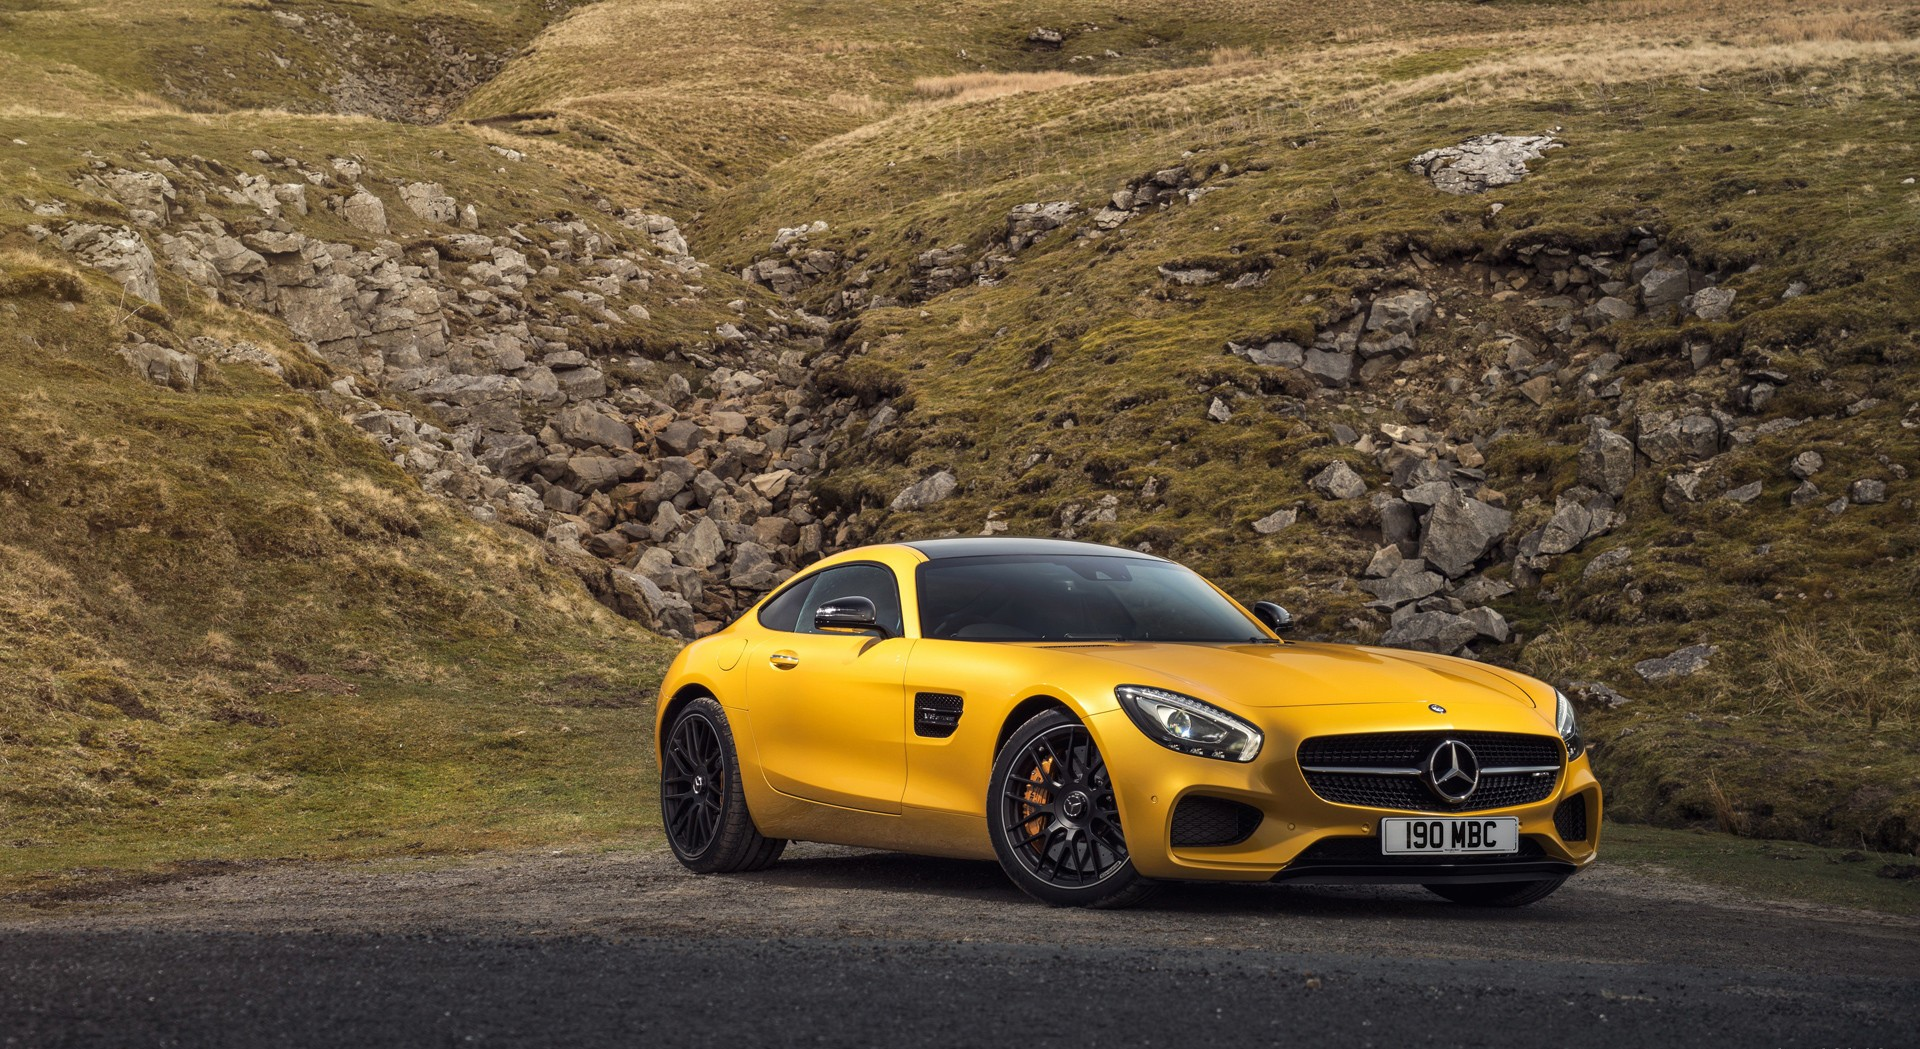 mercedes benz amg gt yellow free hd desktop wallpapers 4k hd. Black Bedroom Furniture Sets. Home Design Ideas